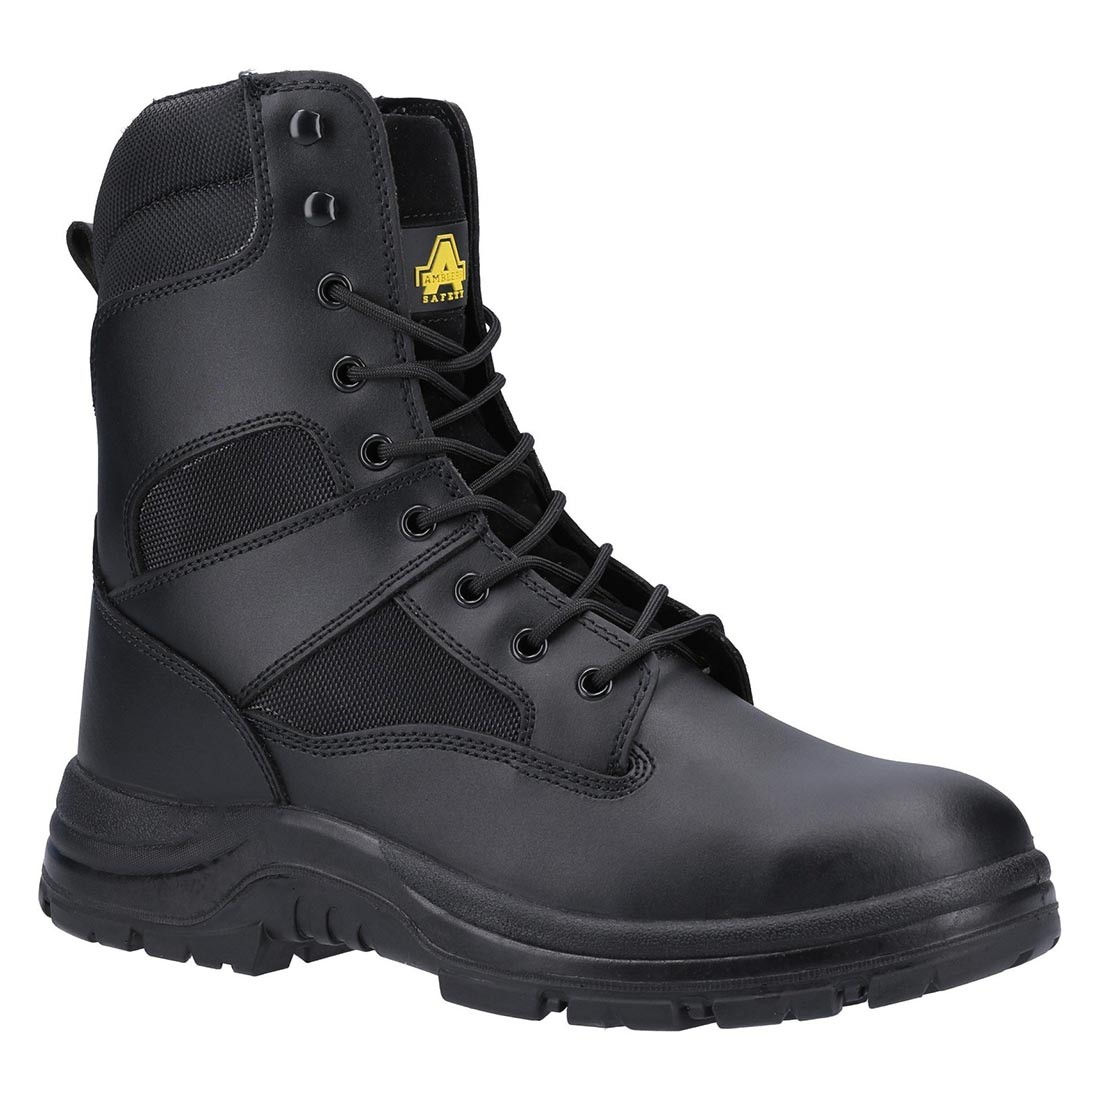 Amblers Safety FS008 Black Leather Side Zip S3 SRC Unisex Safety Boots